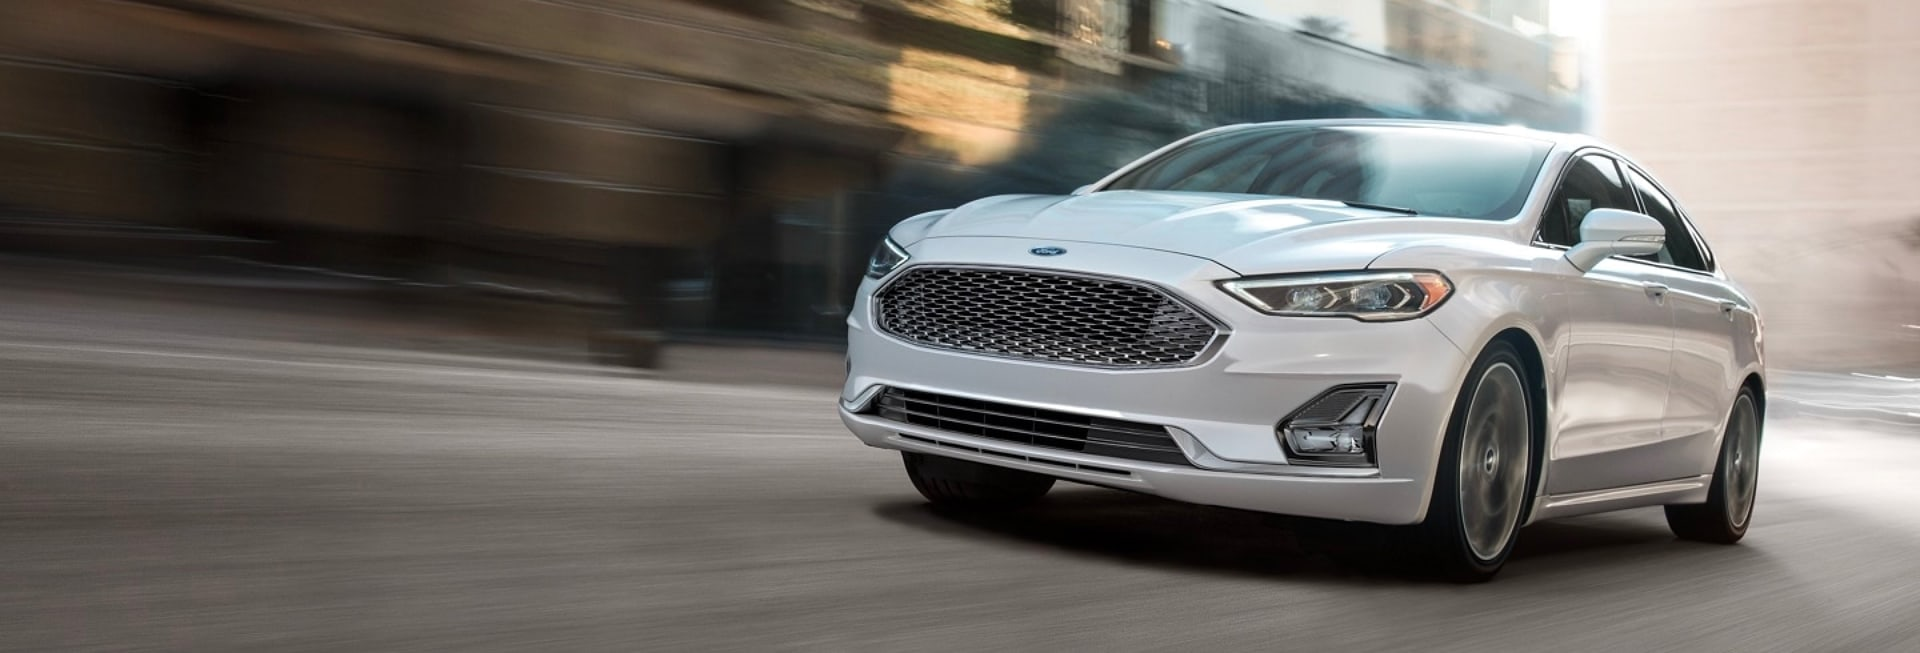 2020 Ford Fusion driving on a city street